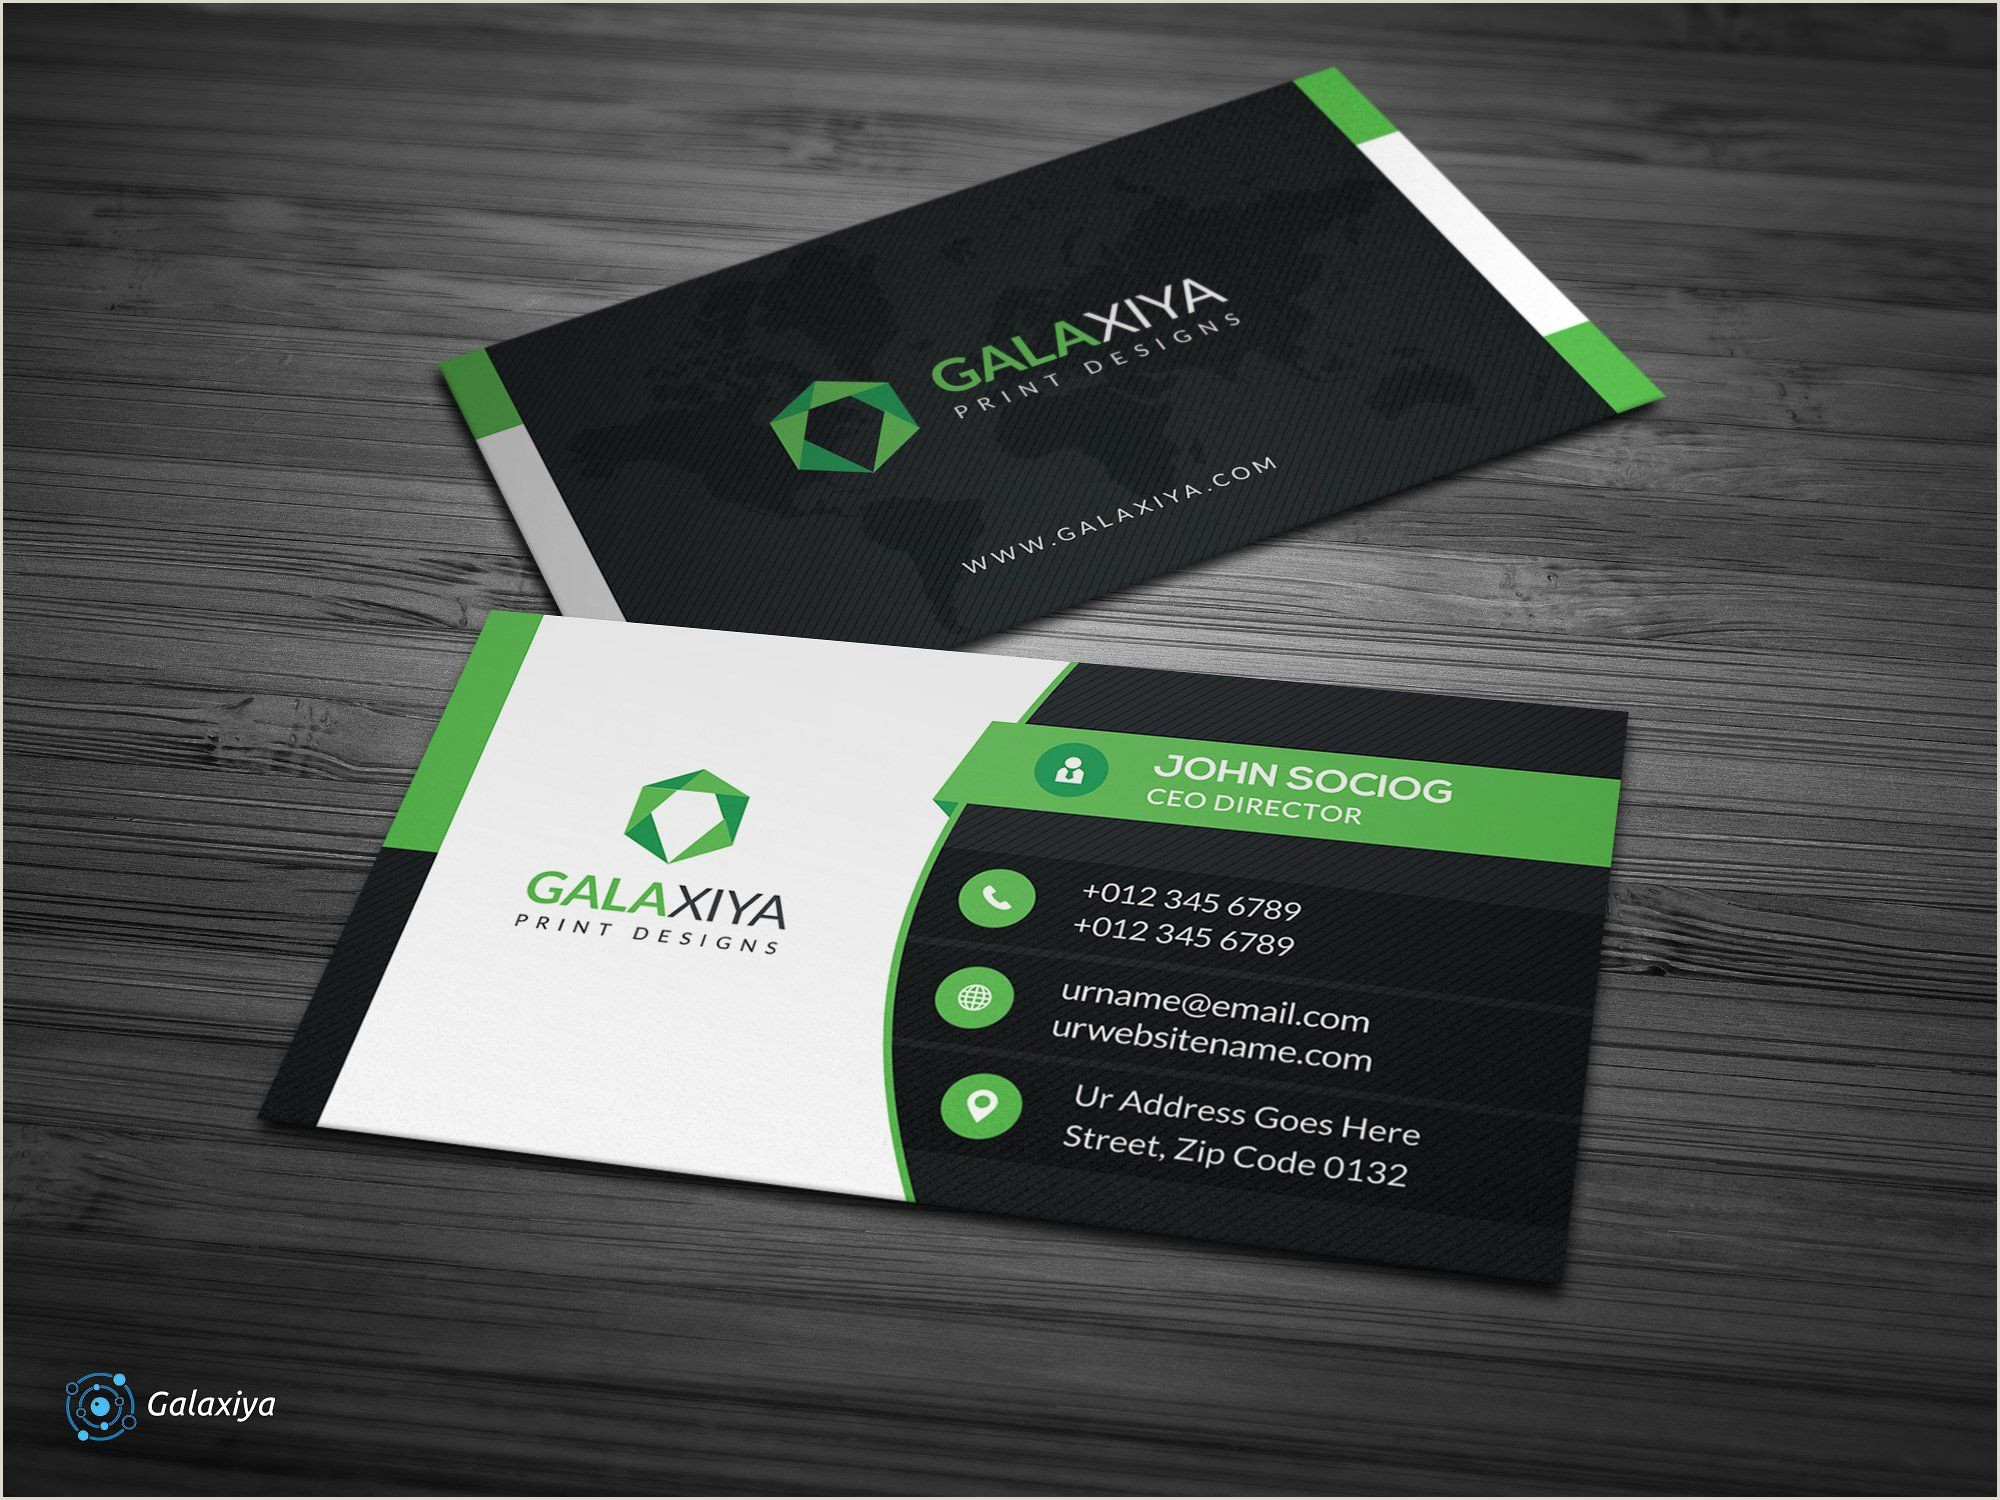 Great Business Cards Examples Creative Corporate Business Cards By Galaxiya On